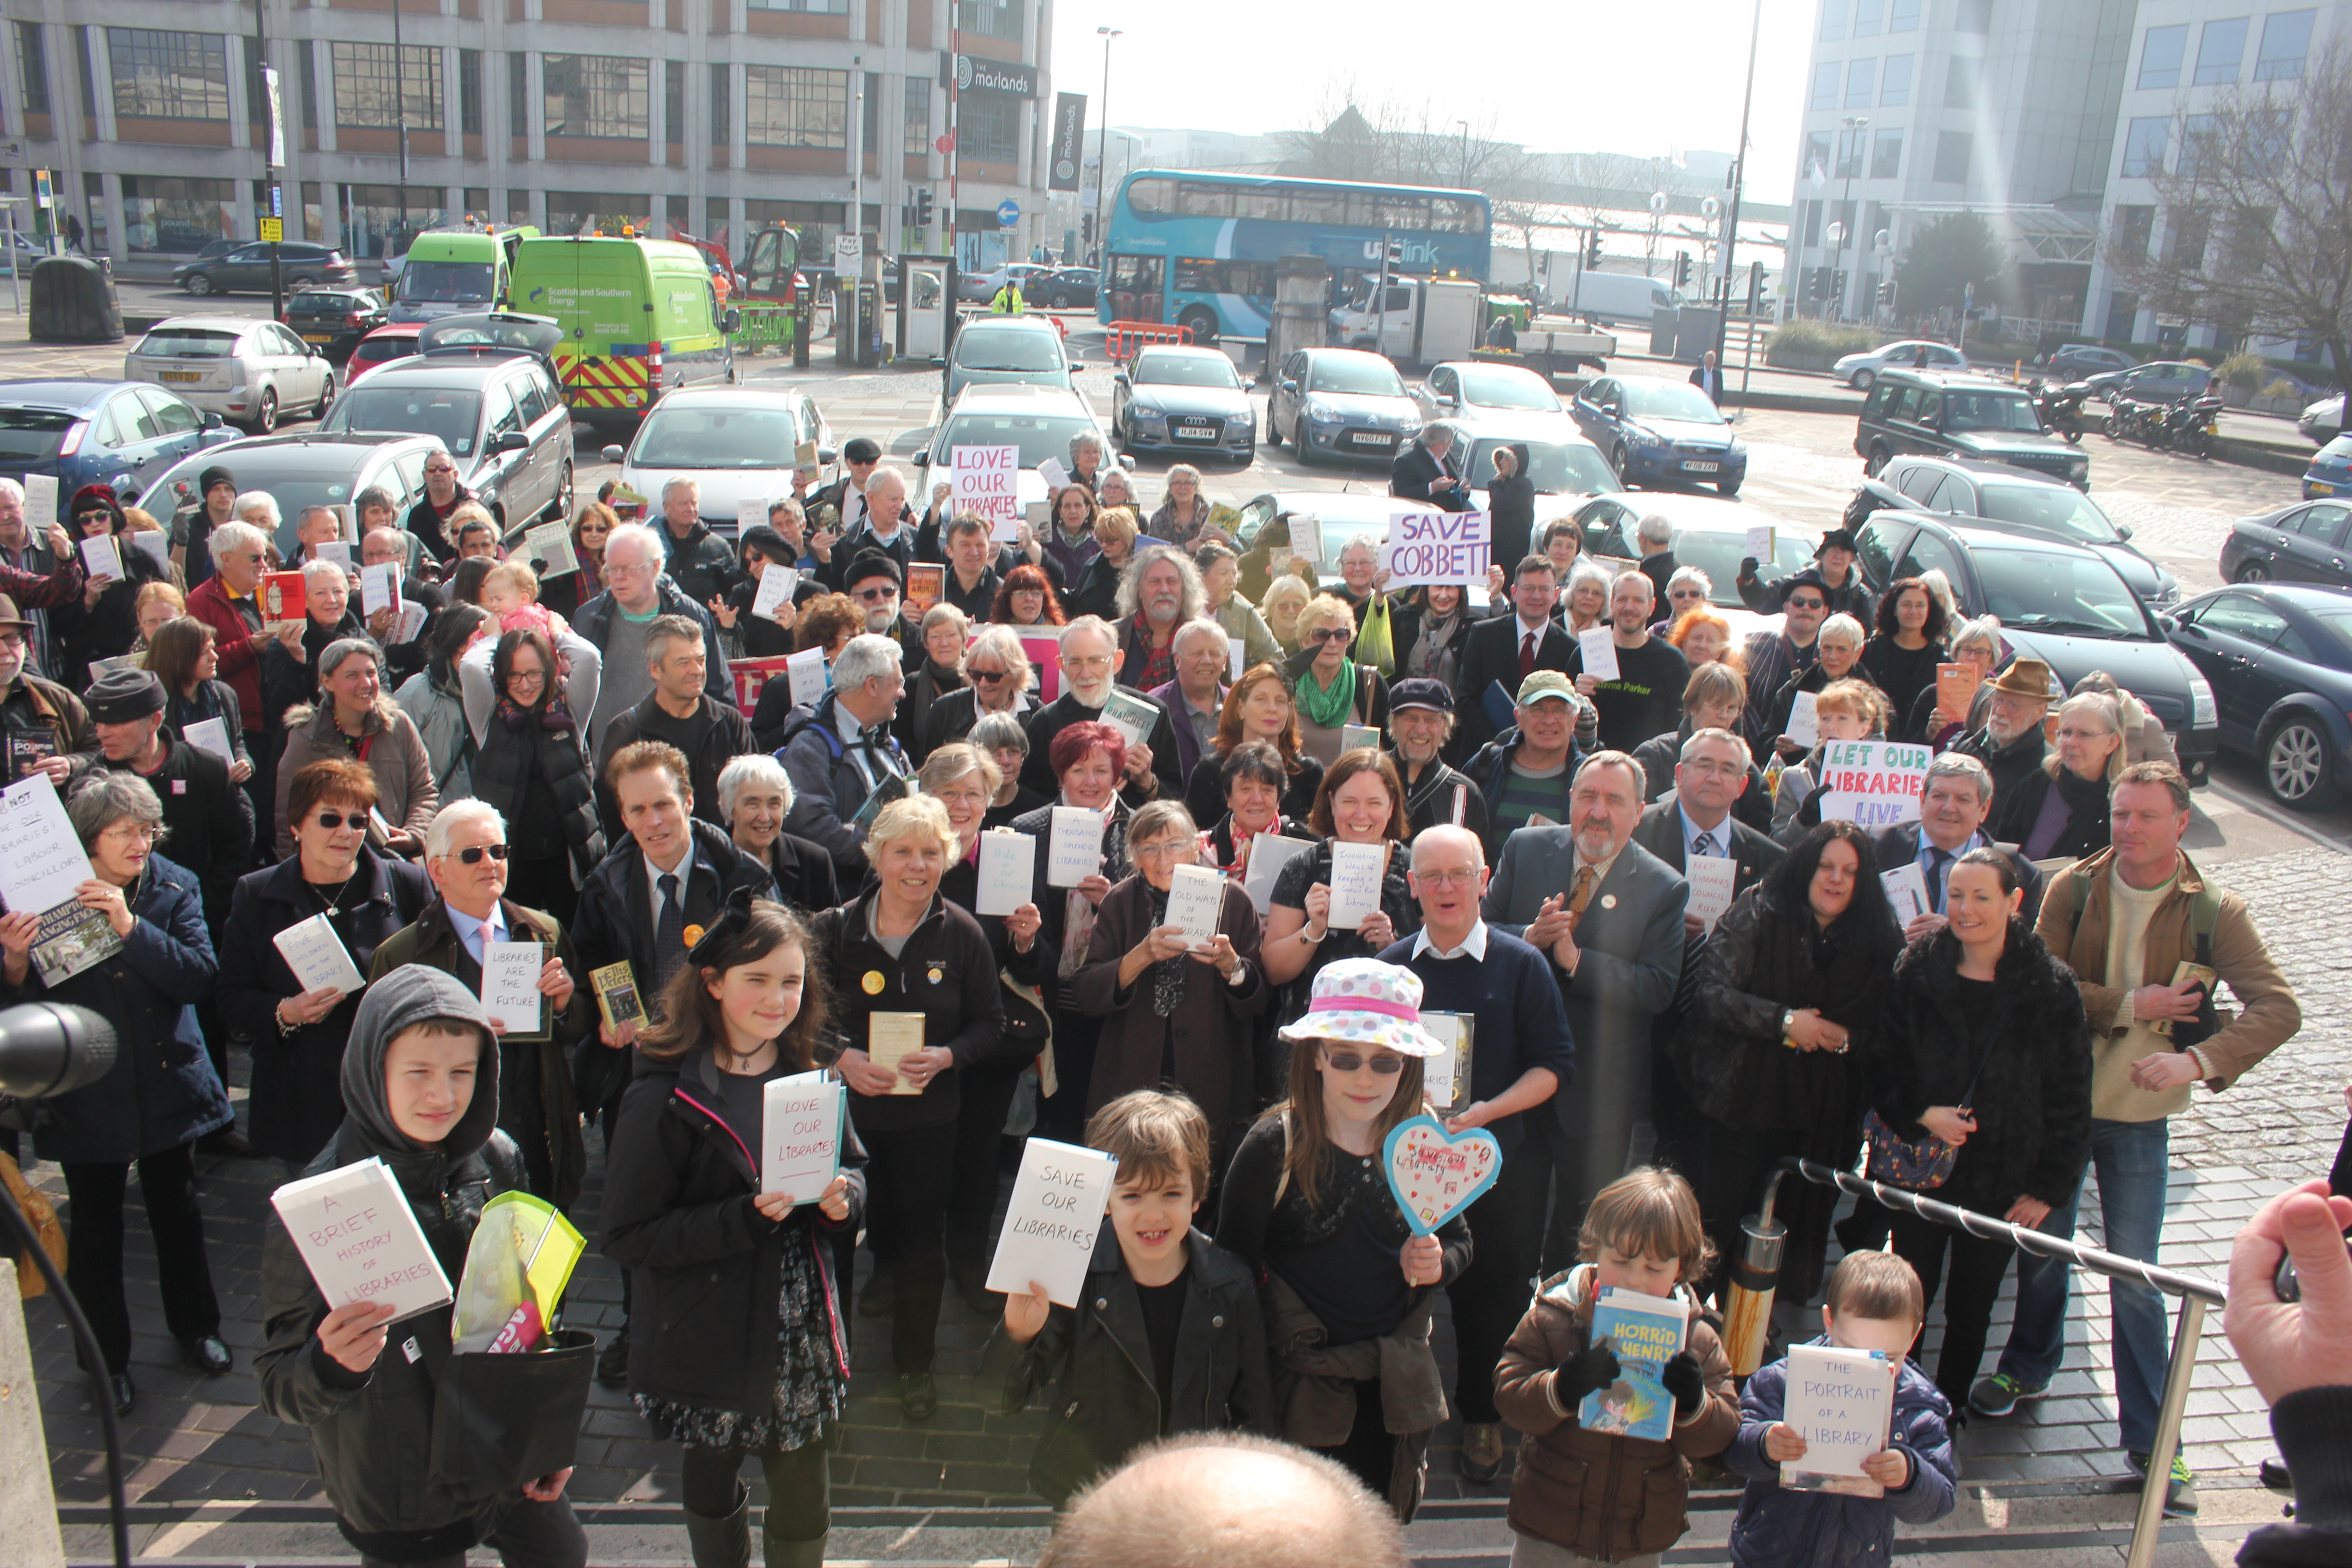 Campaigners march through Southampton to protest library closures